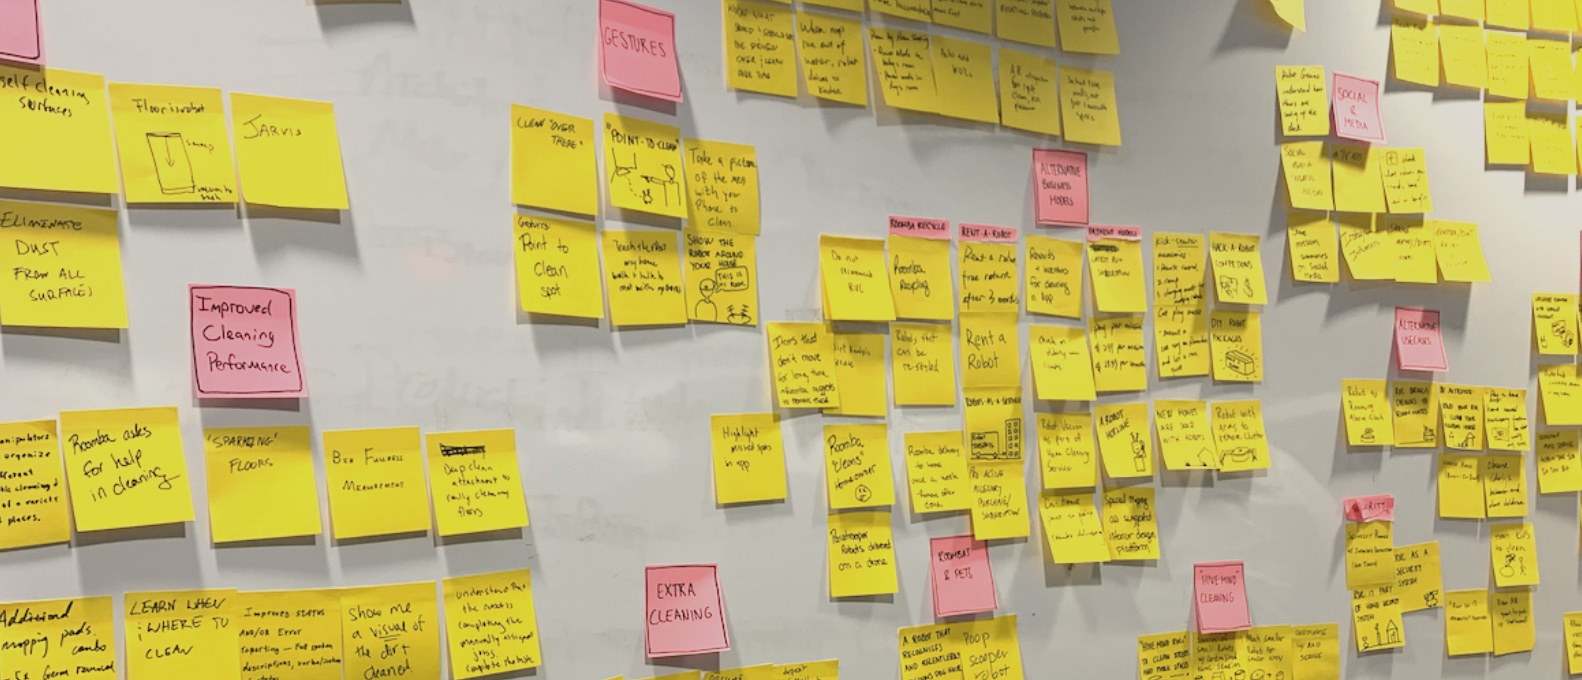 sticky notes being synthesized on a whiteboard organized into categories